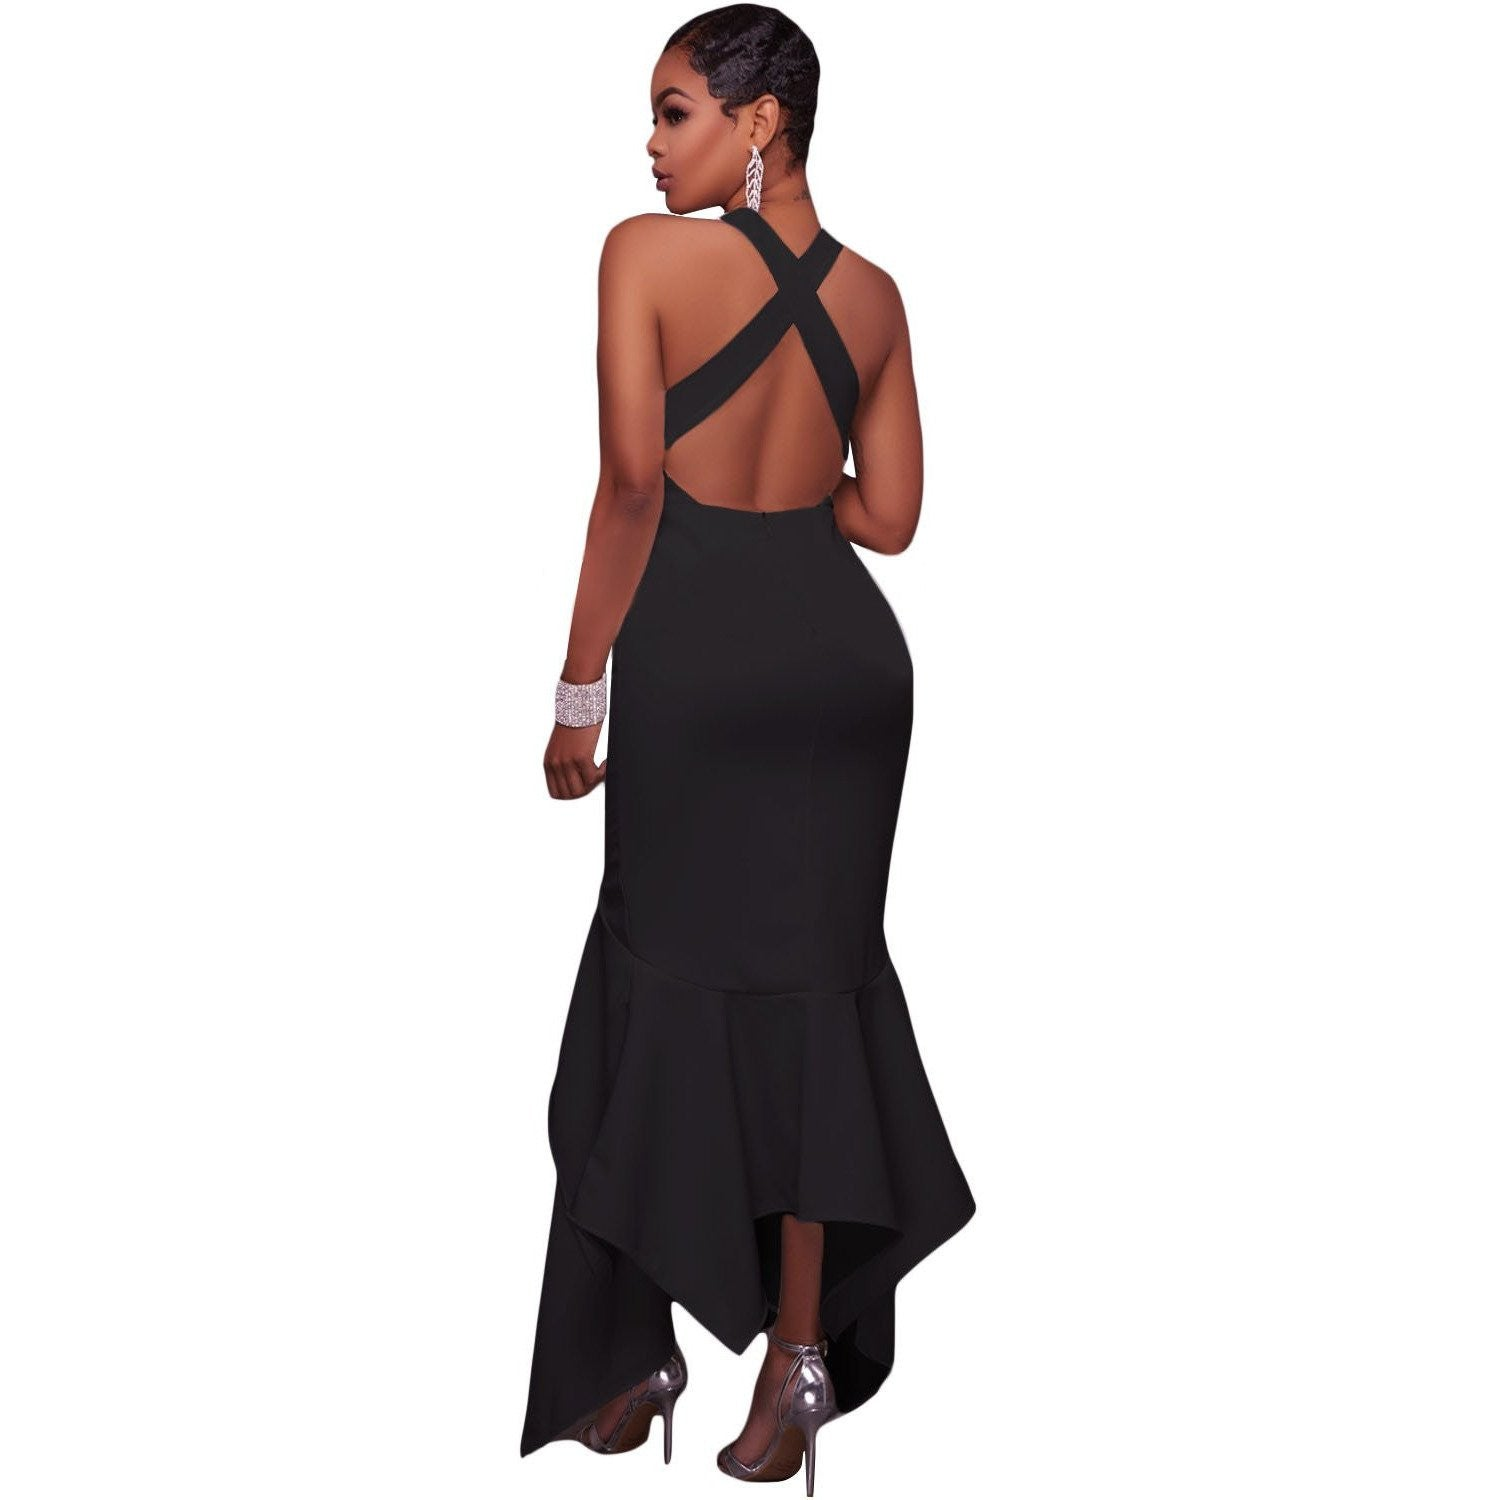 KELLIPS Black Asymmetric Hemline Maxi Dress - KELLIPS